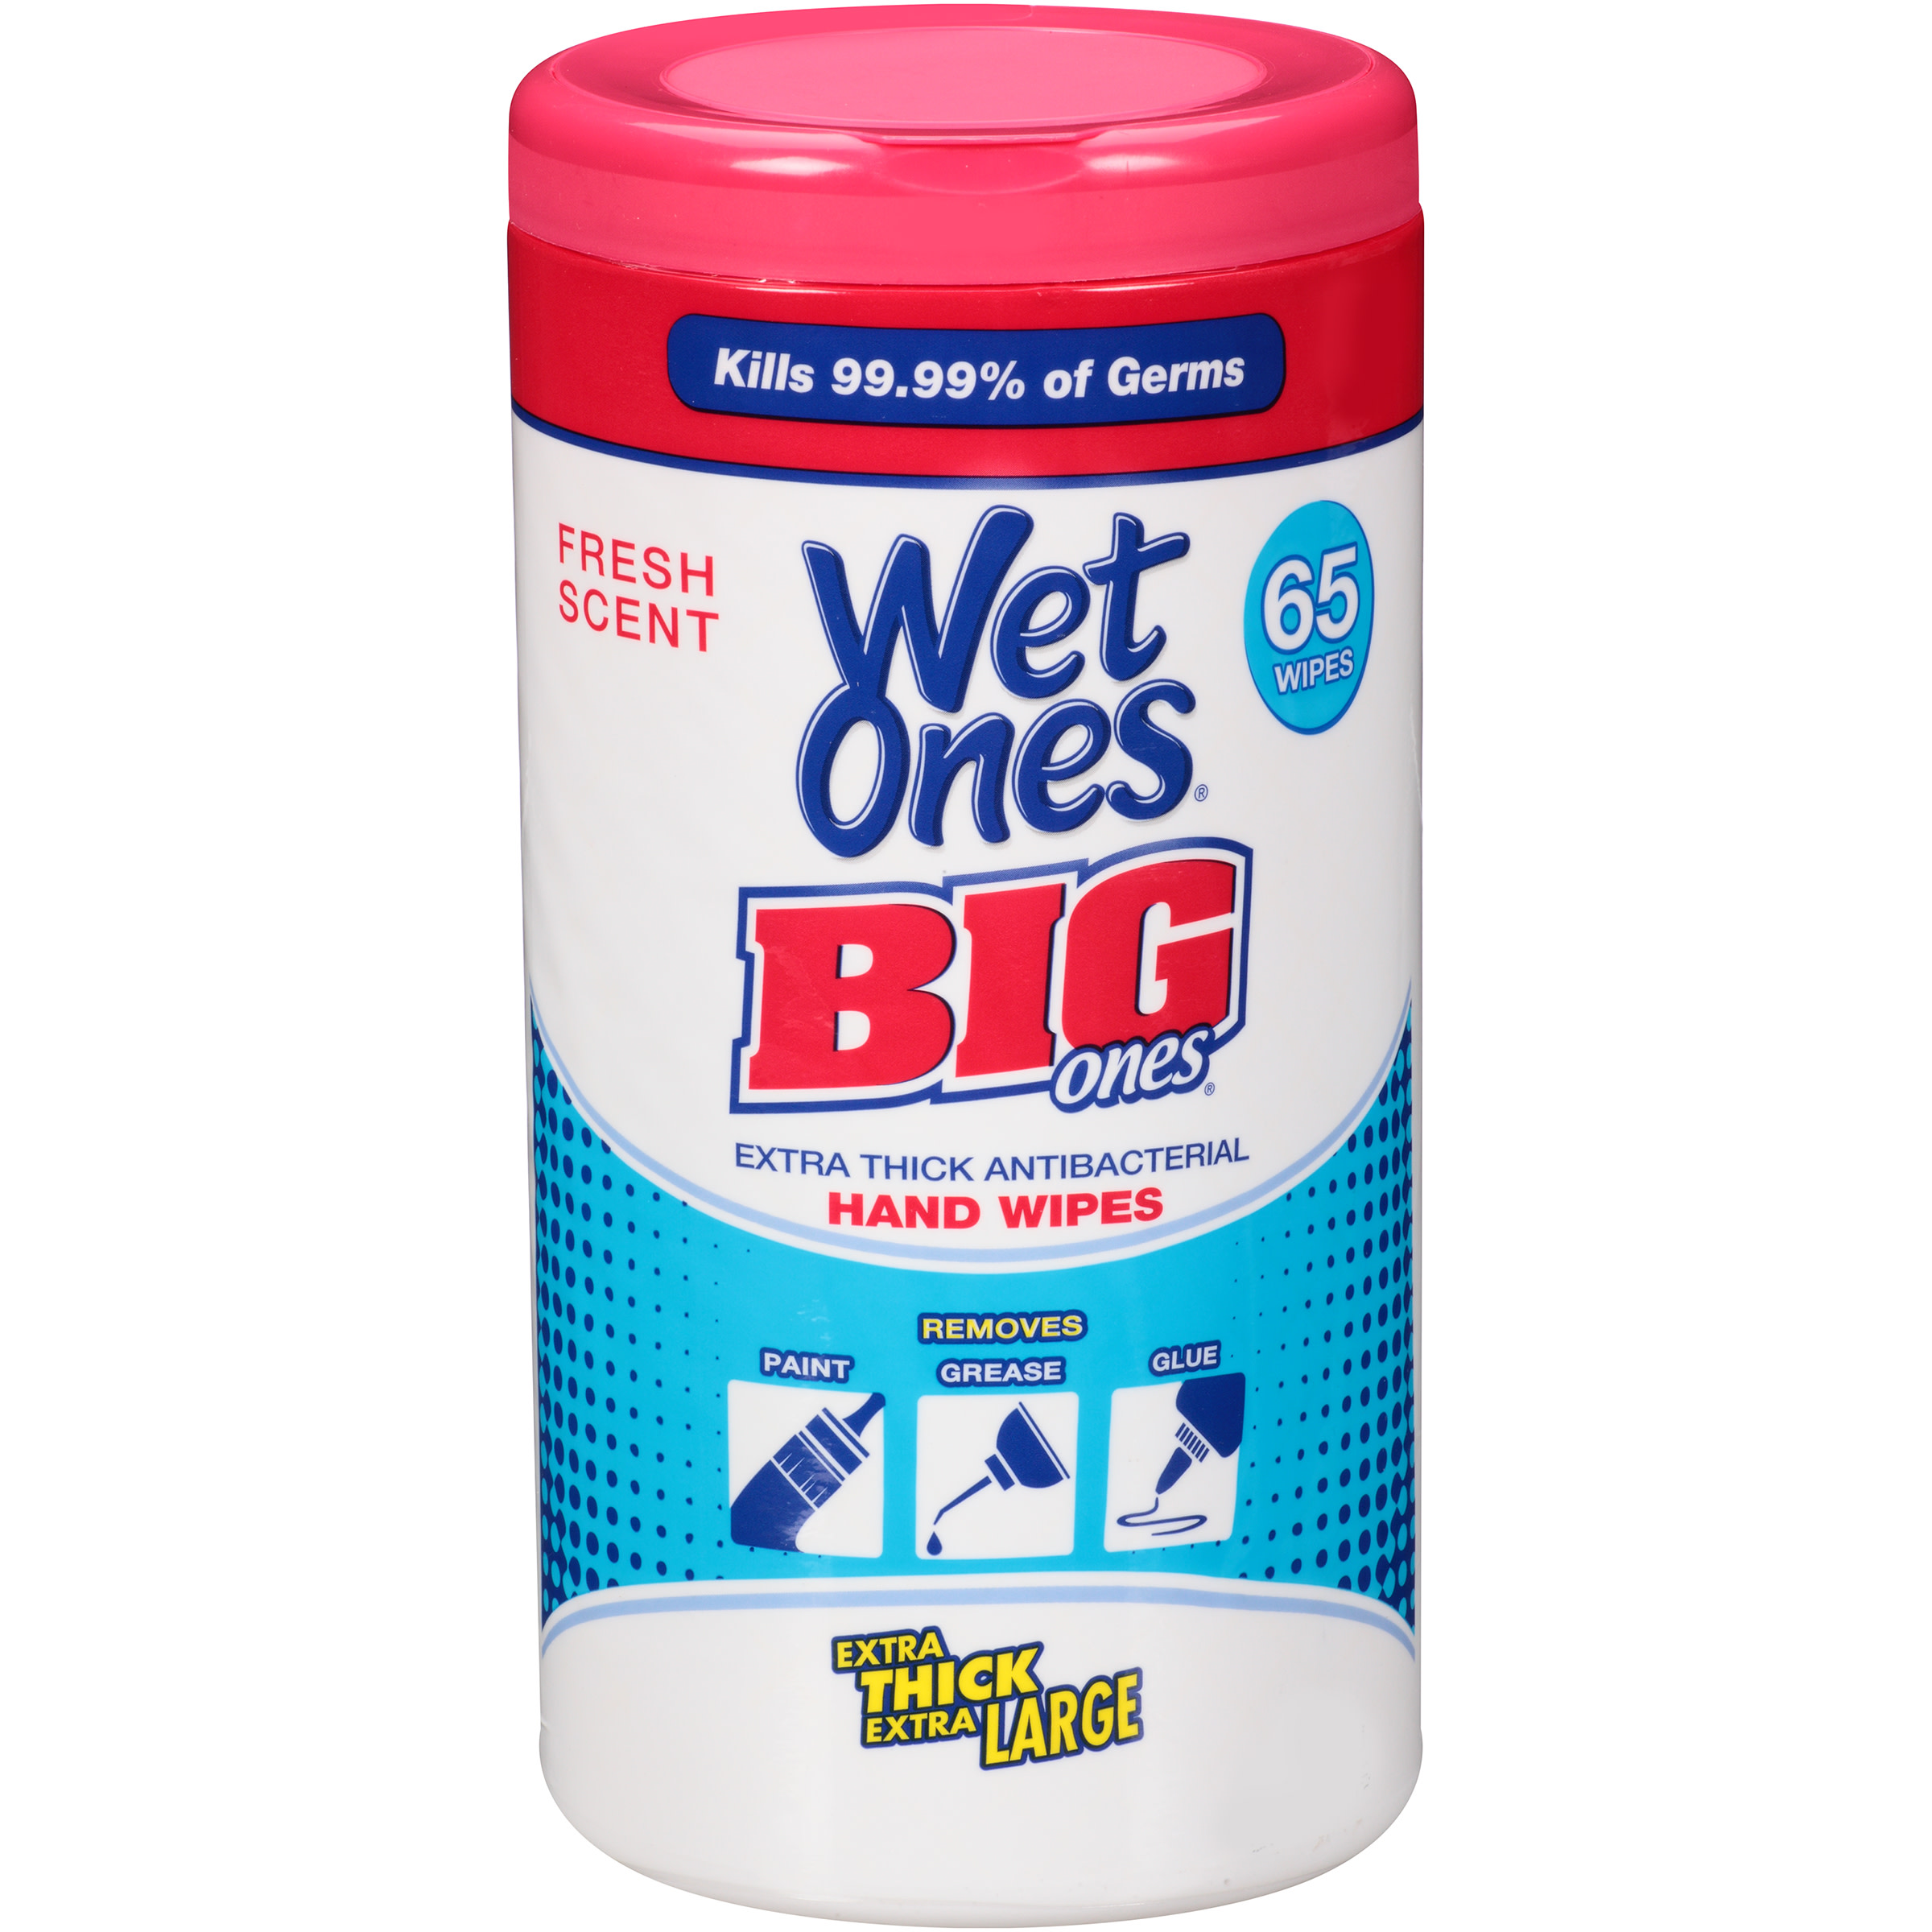 Wet Ones Big Ones Antibacterial Hand Wipes Canister - 65 Count